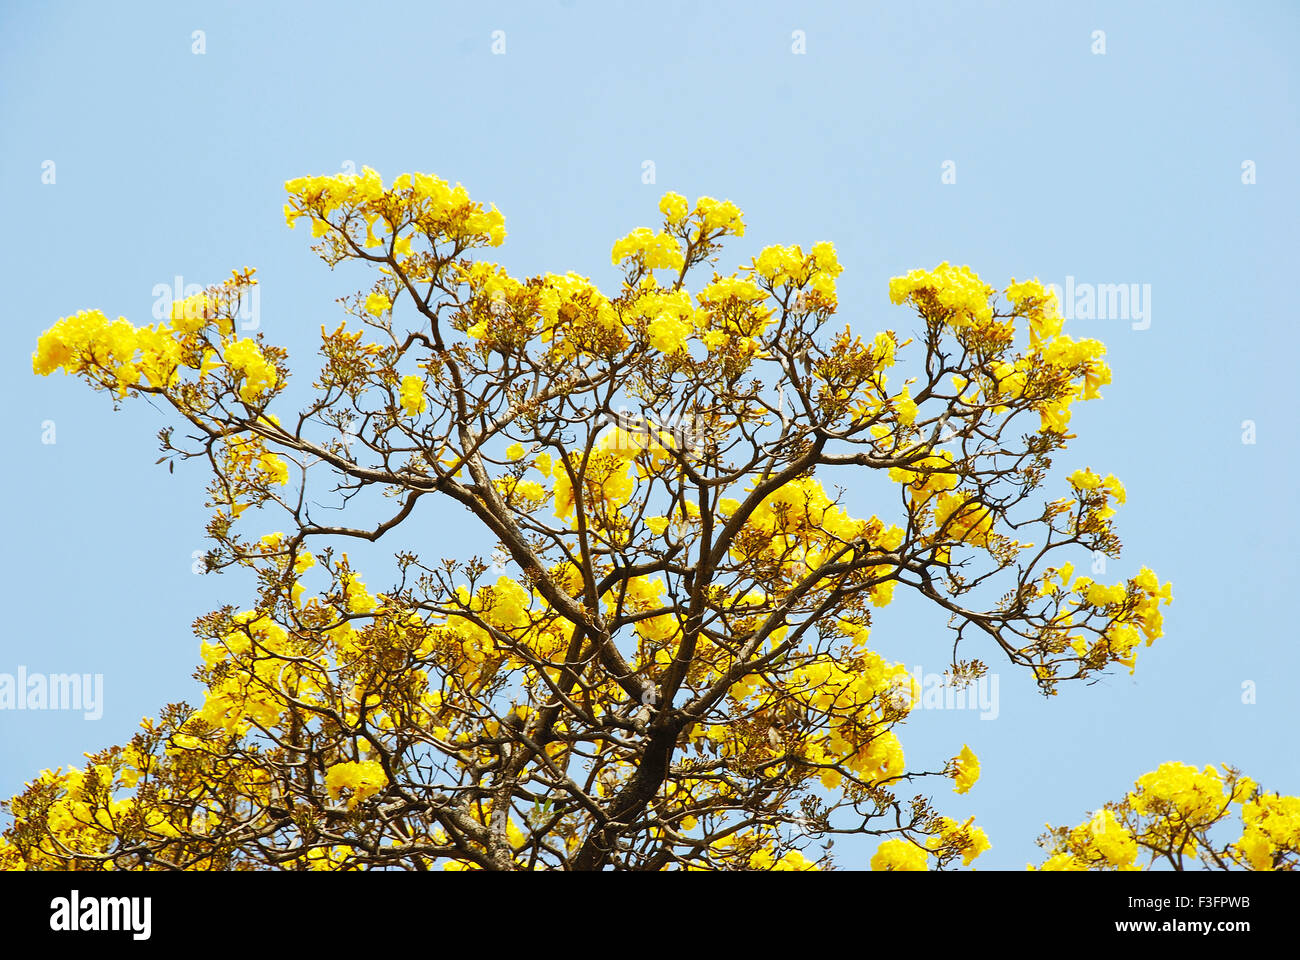 Yellow Flowers Blooming In Spring Season India Stock Photo